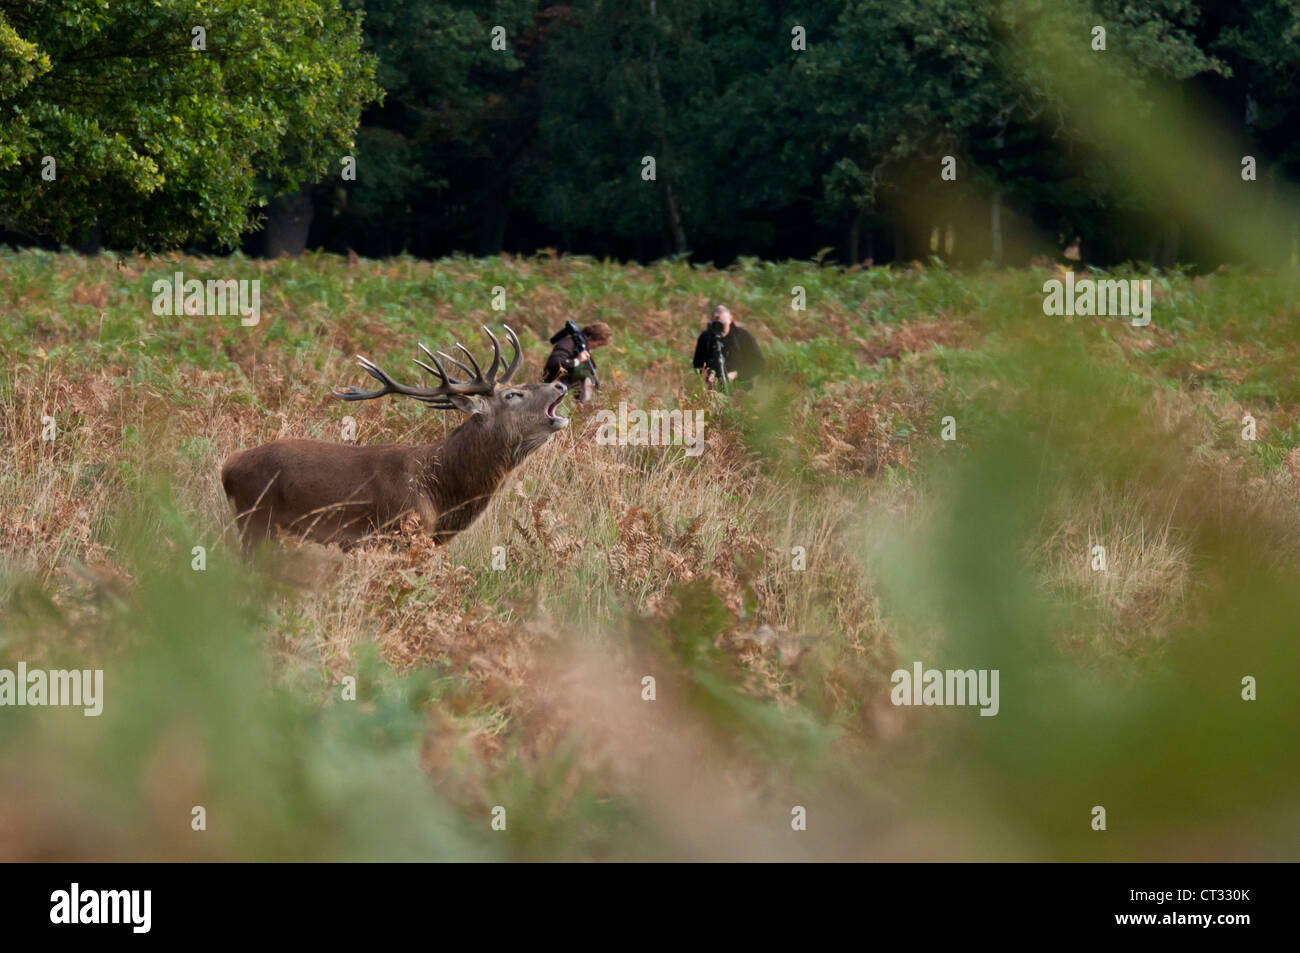 Red deer (Cervus elaphus) stag roaring with photographers. Stock Photo